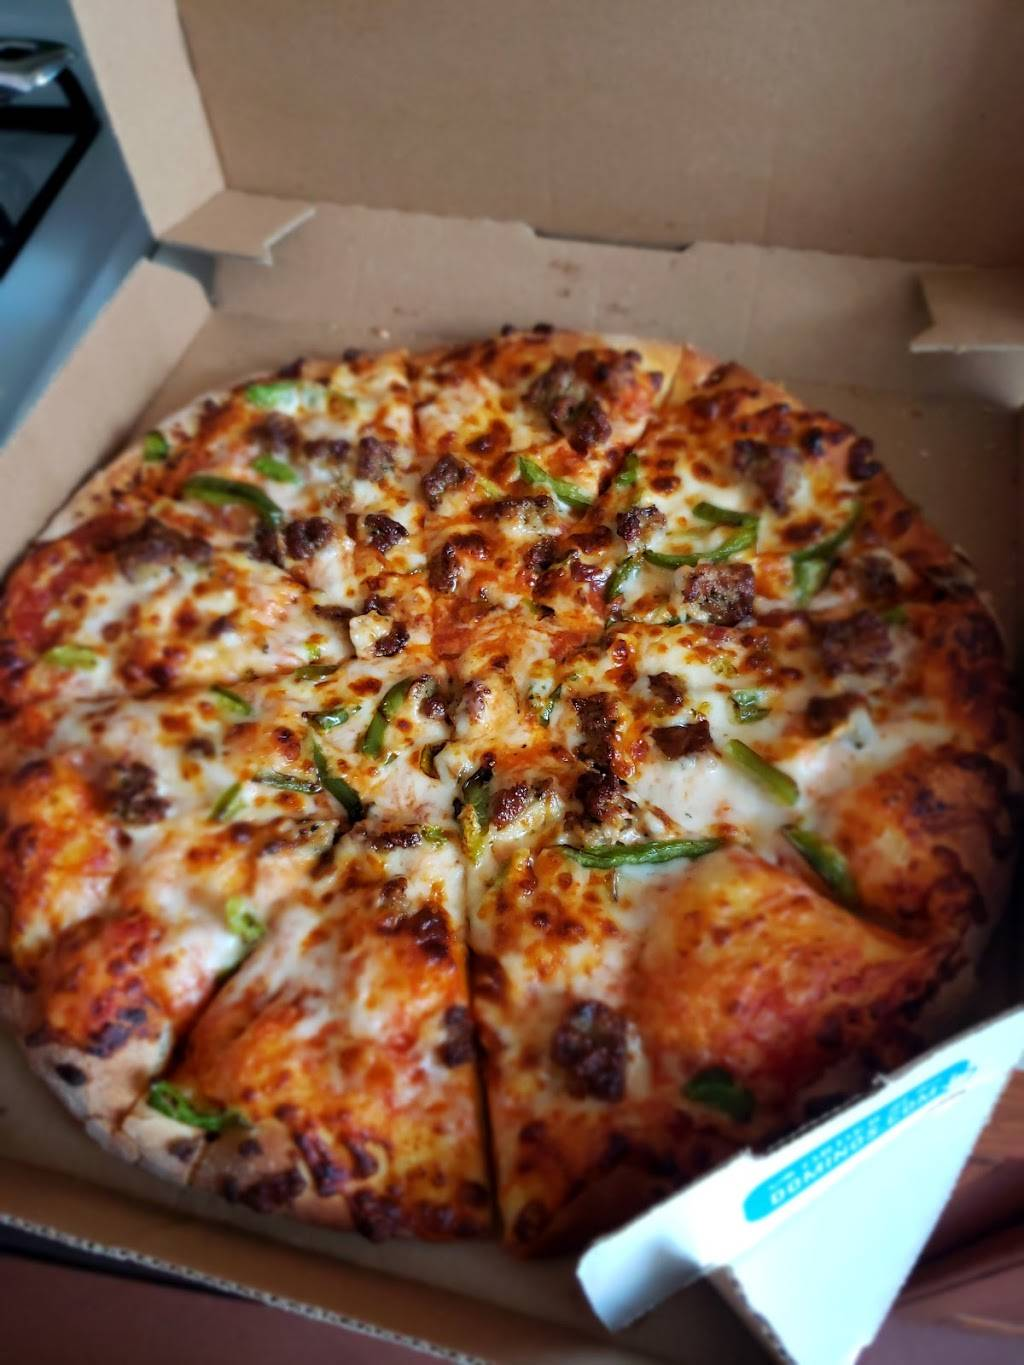 Dominos Pizza | meal delivery | 886 Dekalb Ave, Brooklyn, NY 11221, USA | 9179096464 OR +1 917-909-6464